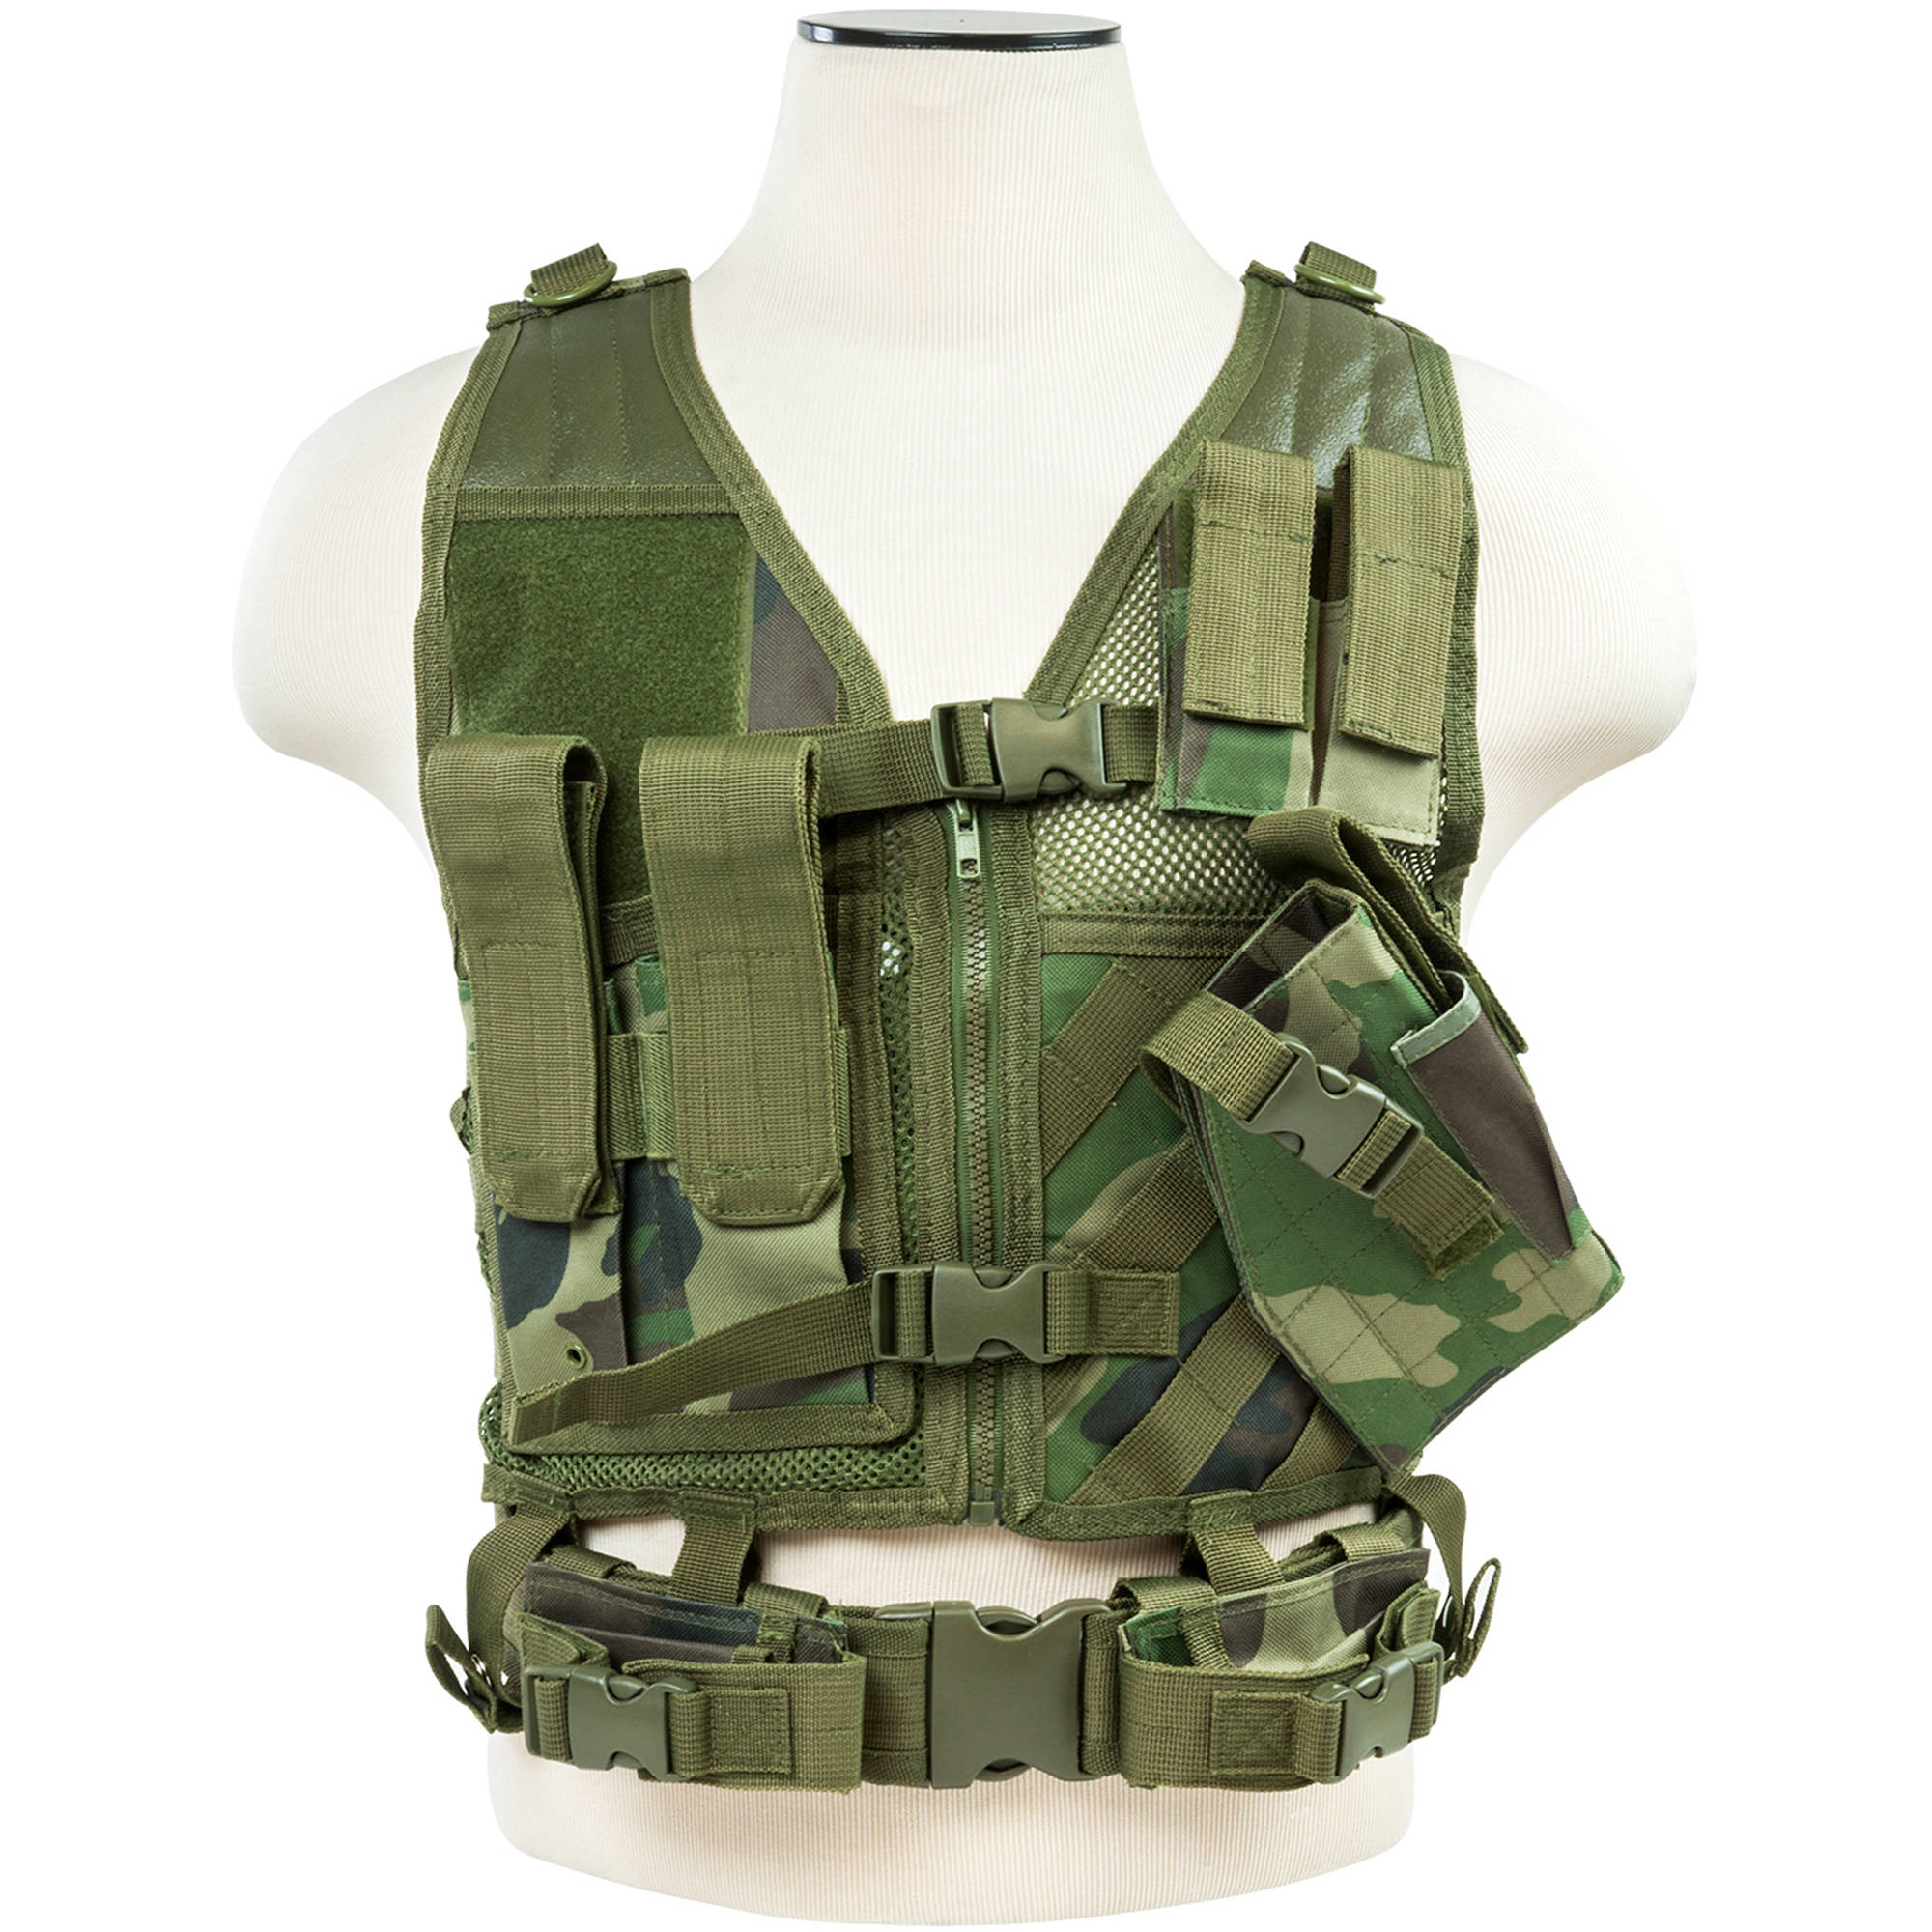 NcSTAR Tactical Vest, Smaller Size, Woodland Camo (XS to S)